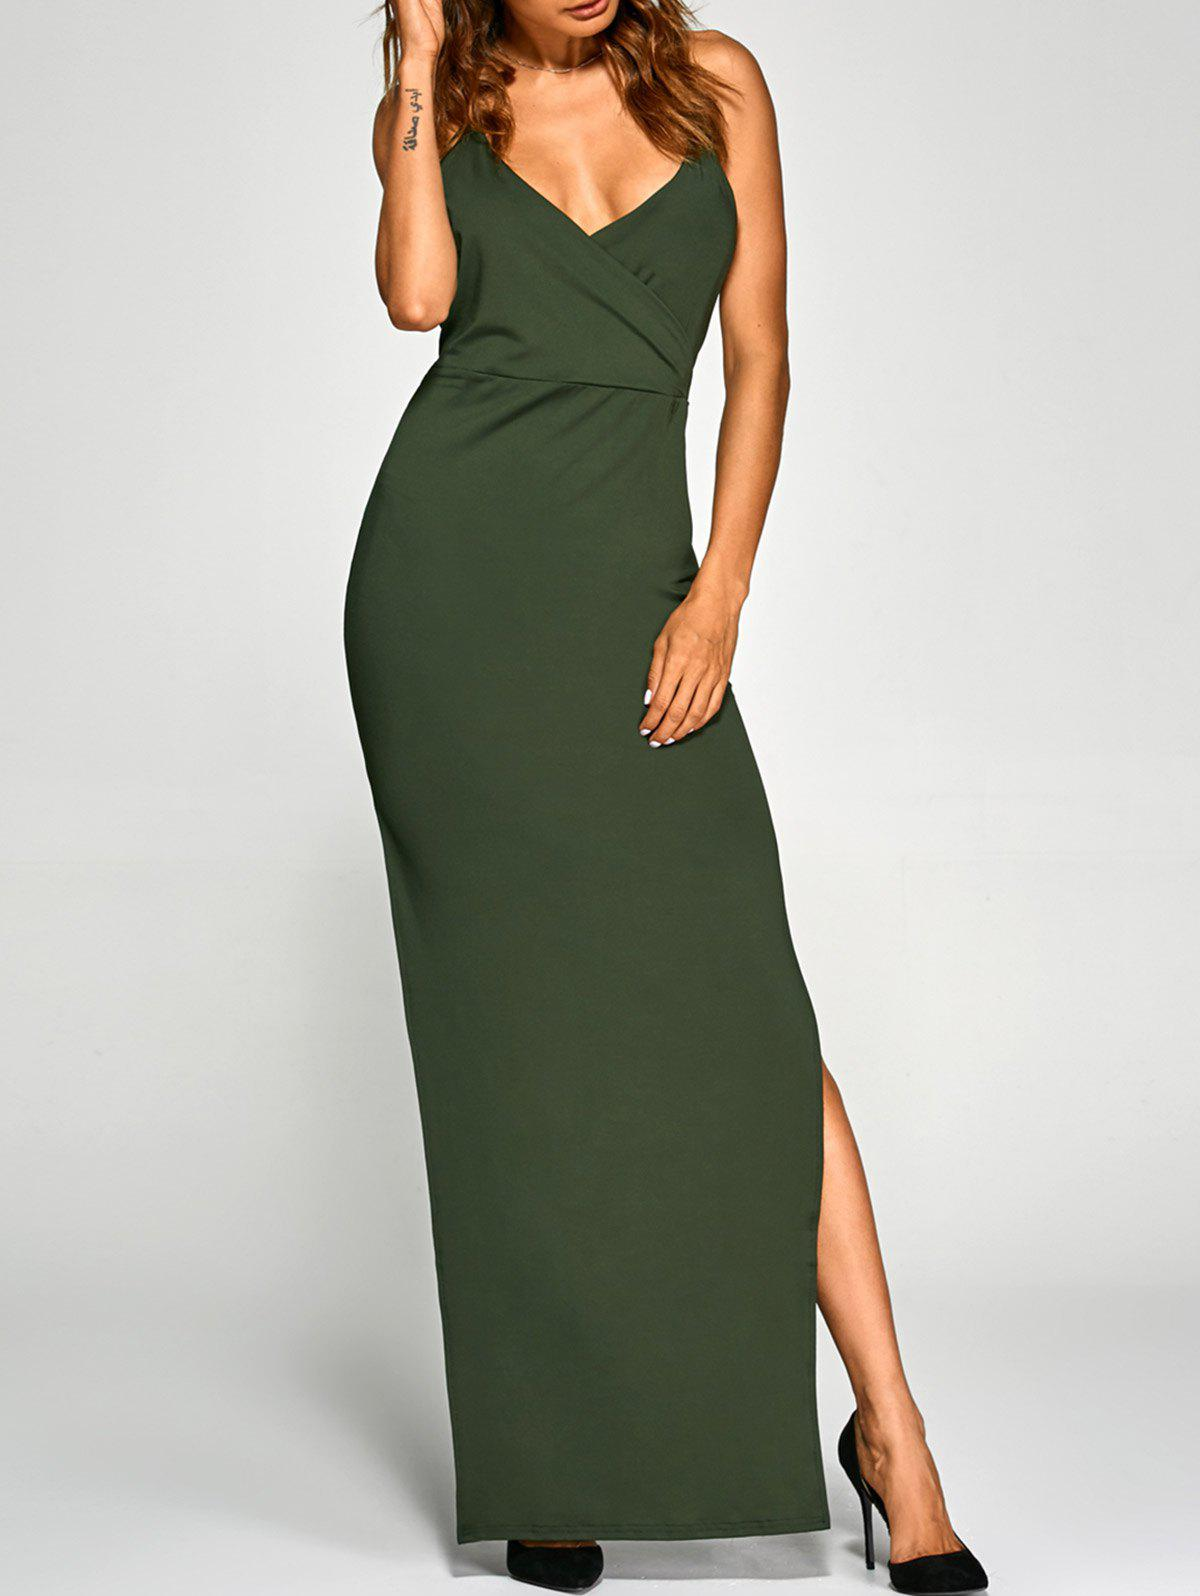 low cut cross back slit party dress army green m in maxi